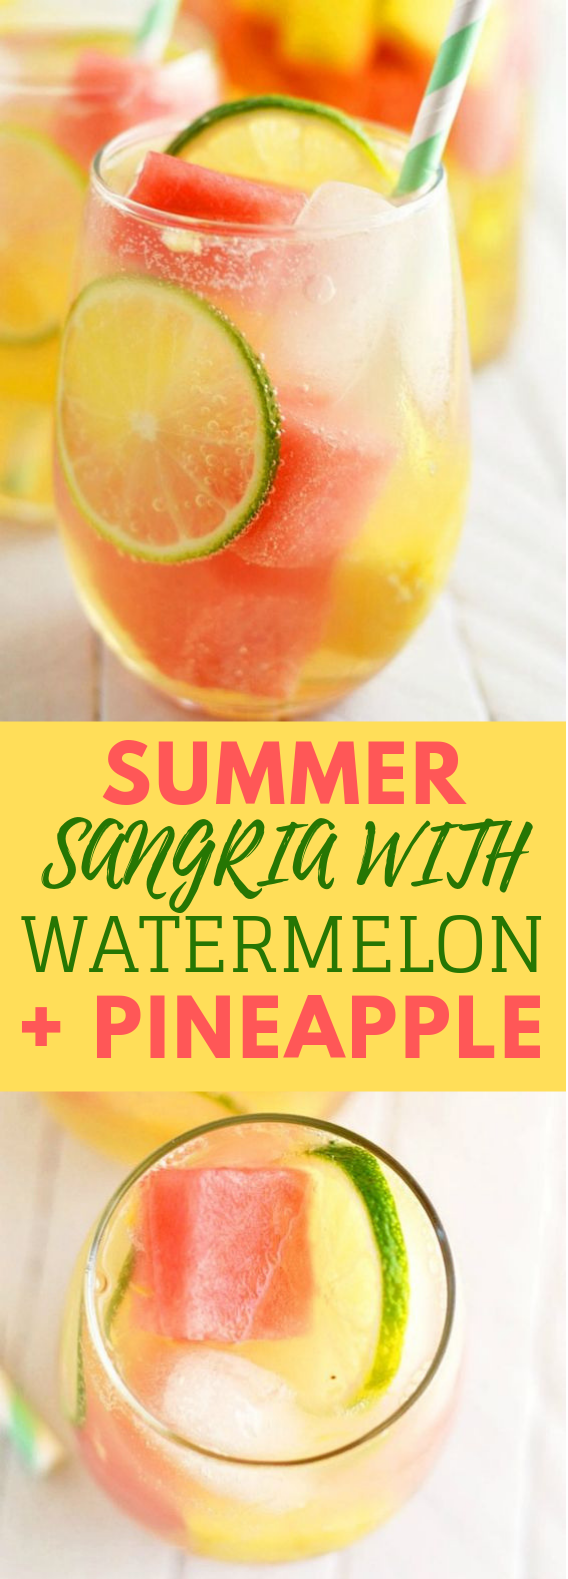 Summer Sangria with Watermelon and Pineapple #Summer #Drink